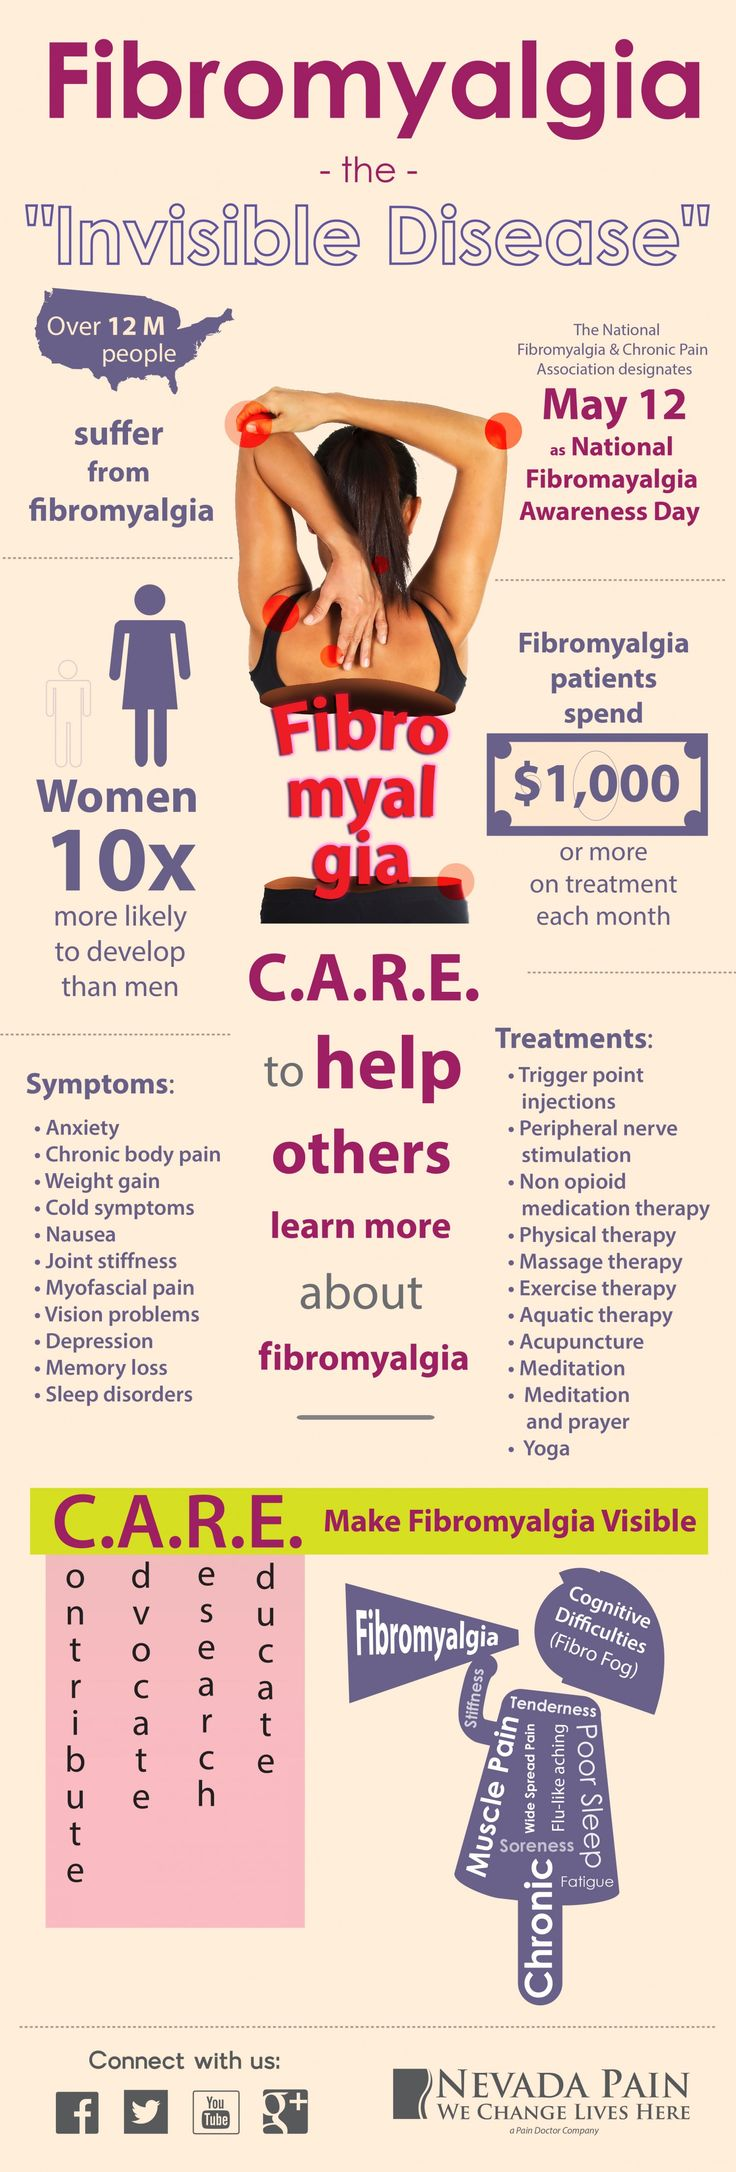 Colour therapy for fibromyalgia - Find This Pin And More On Fibromyalgia